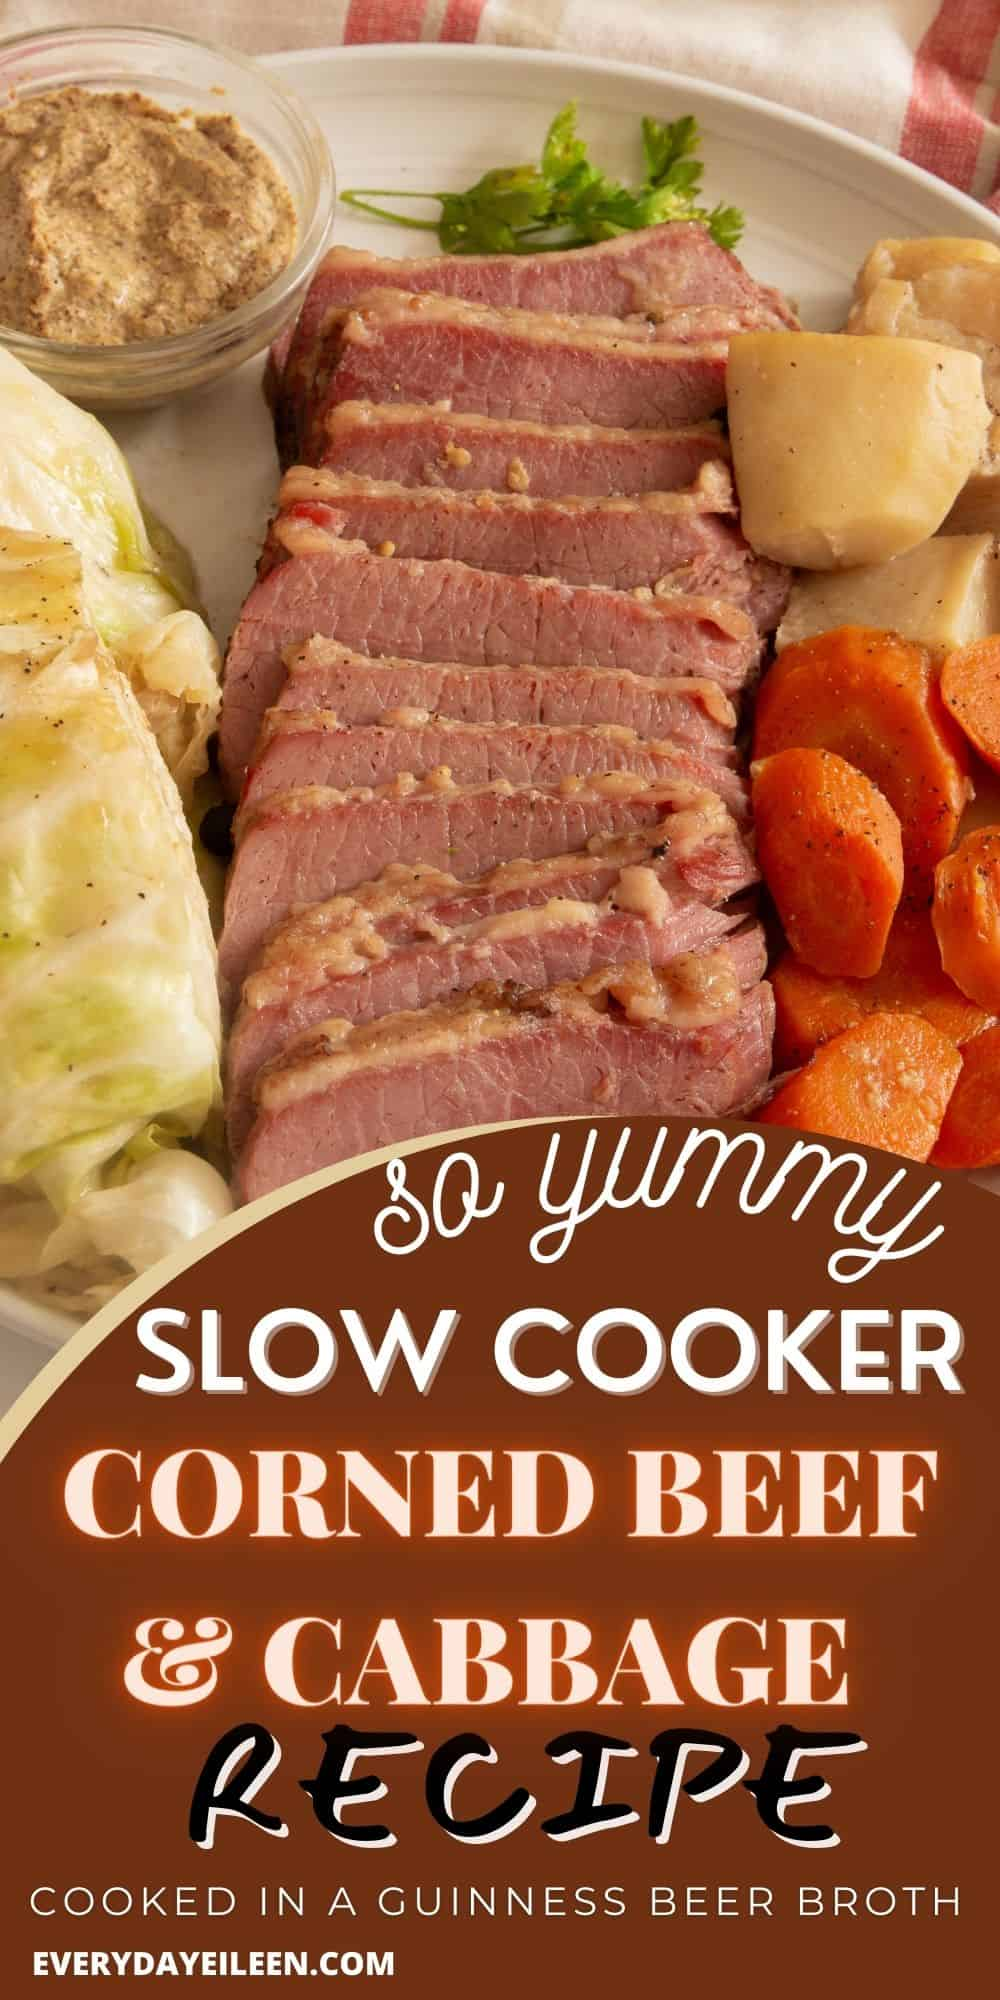 Slow cooker corned beef and cabbage, braised in beer, garlic, and seasoning to produce the most flavor-packed dinner. Tender cabbage, carrots, and potatoes are perfectly paired with the beef. Cooked to perfection in the crockpot.  via @/everydayeileen/